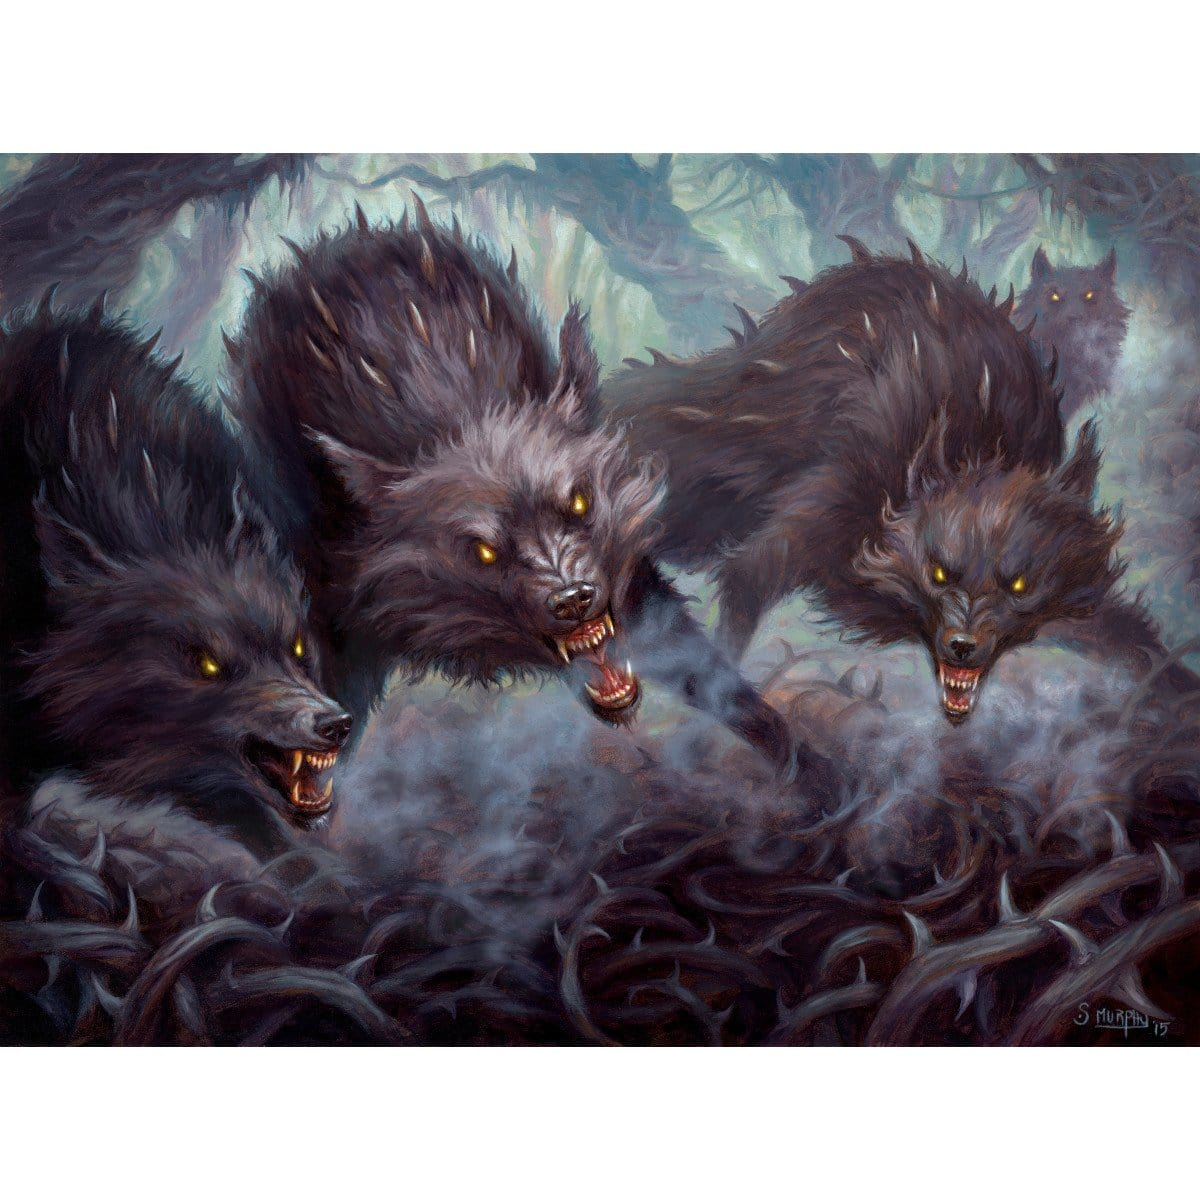 Thornhide Wolves Print - Print - Original Magic Art - Accessories for Magic the Gathering and other card games